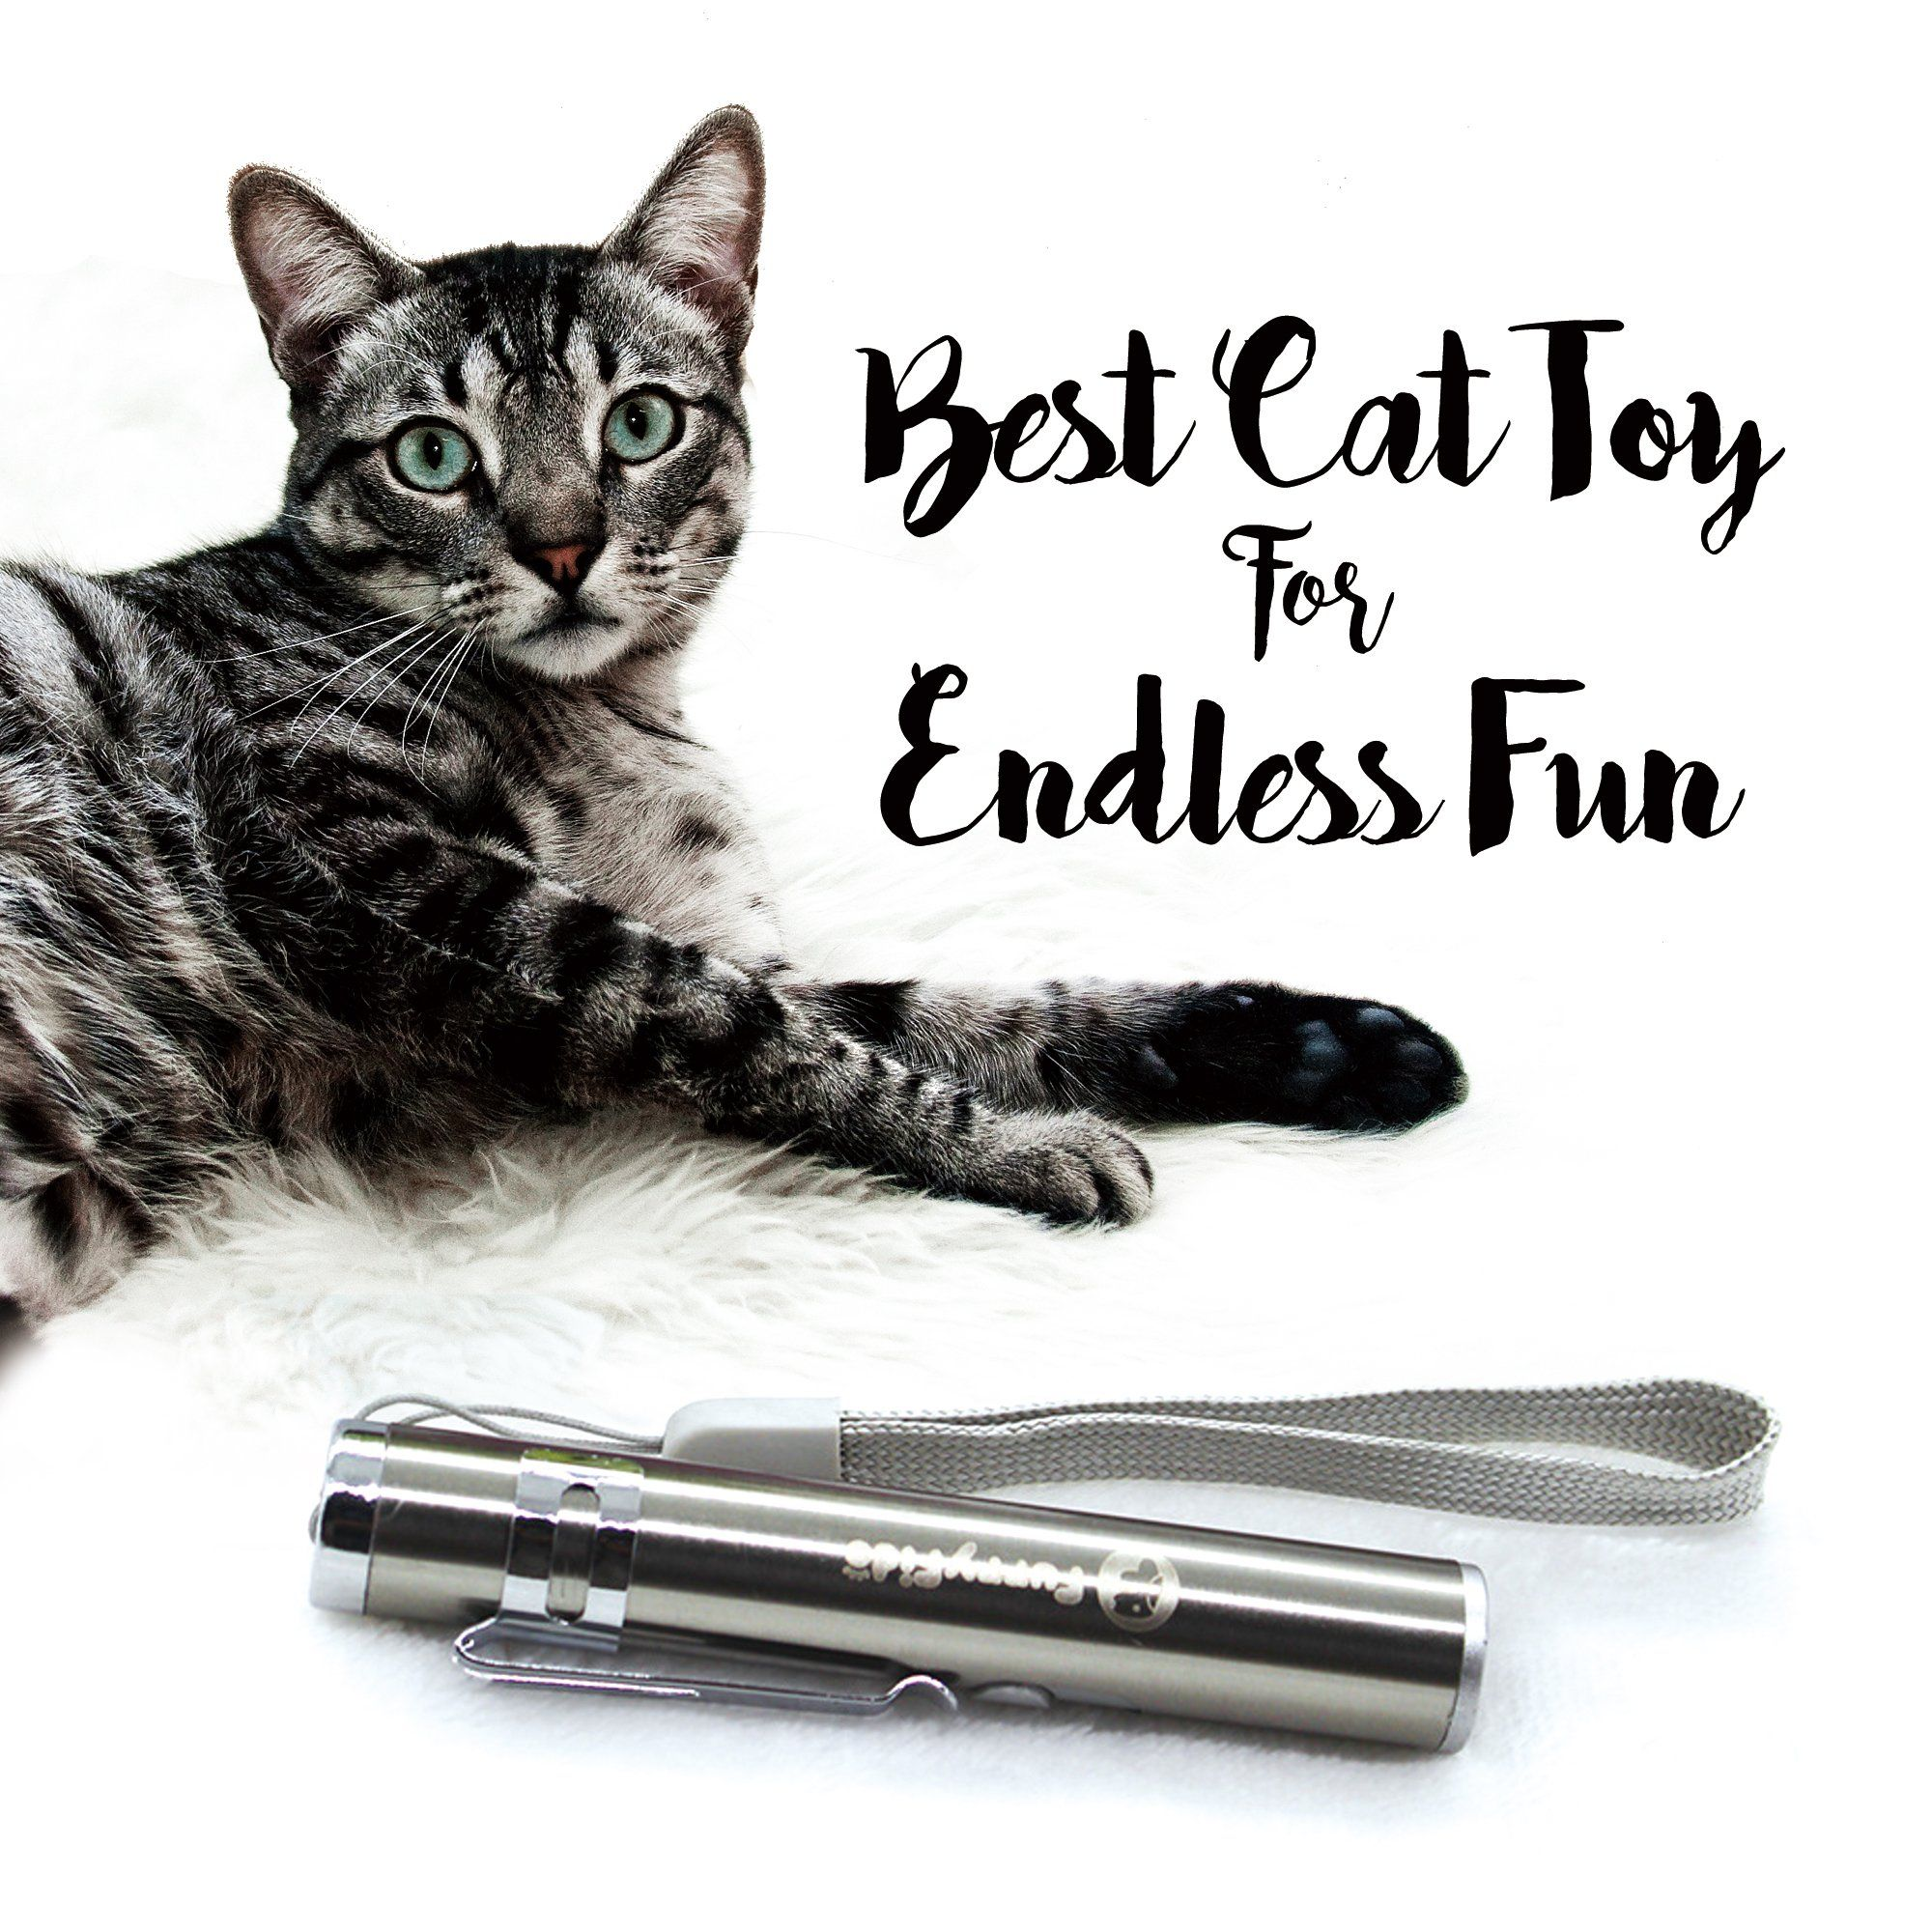 Chase Cat Toy For Endless Fun Interactive Led Light By Furryfido To Entertain Your Pets Usb Chargeable Read More Reviews Cat Toys Cats Cat Laser Pointer